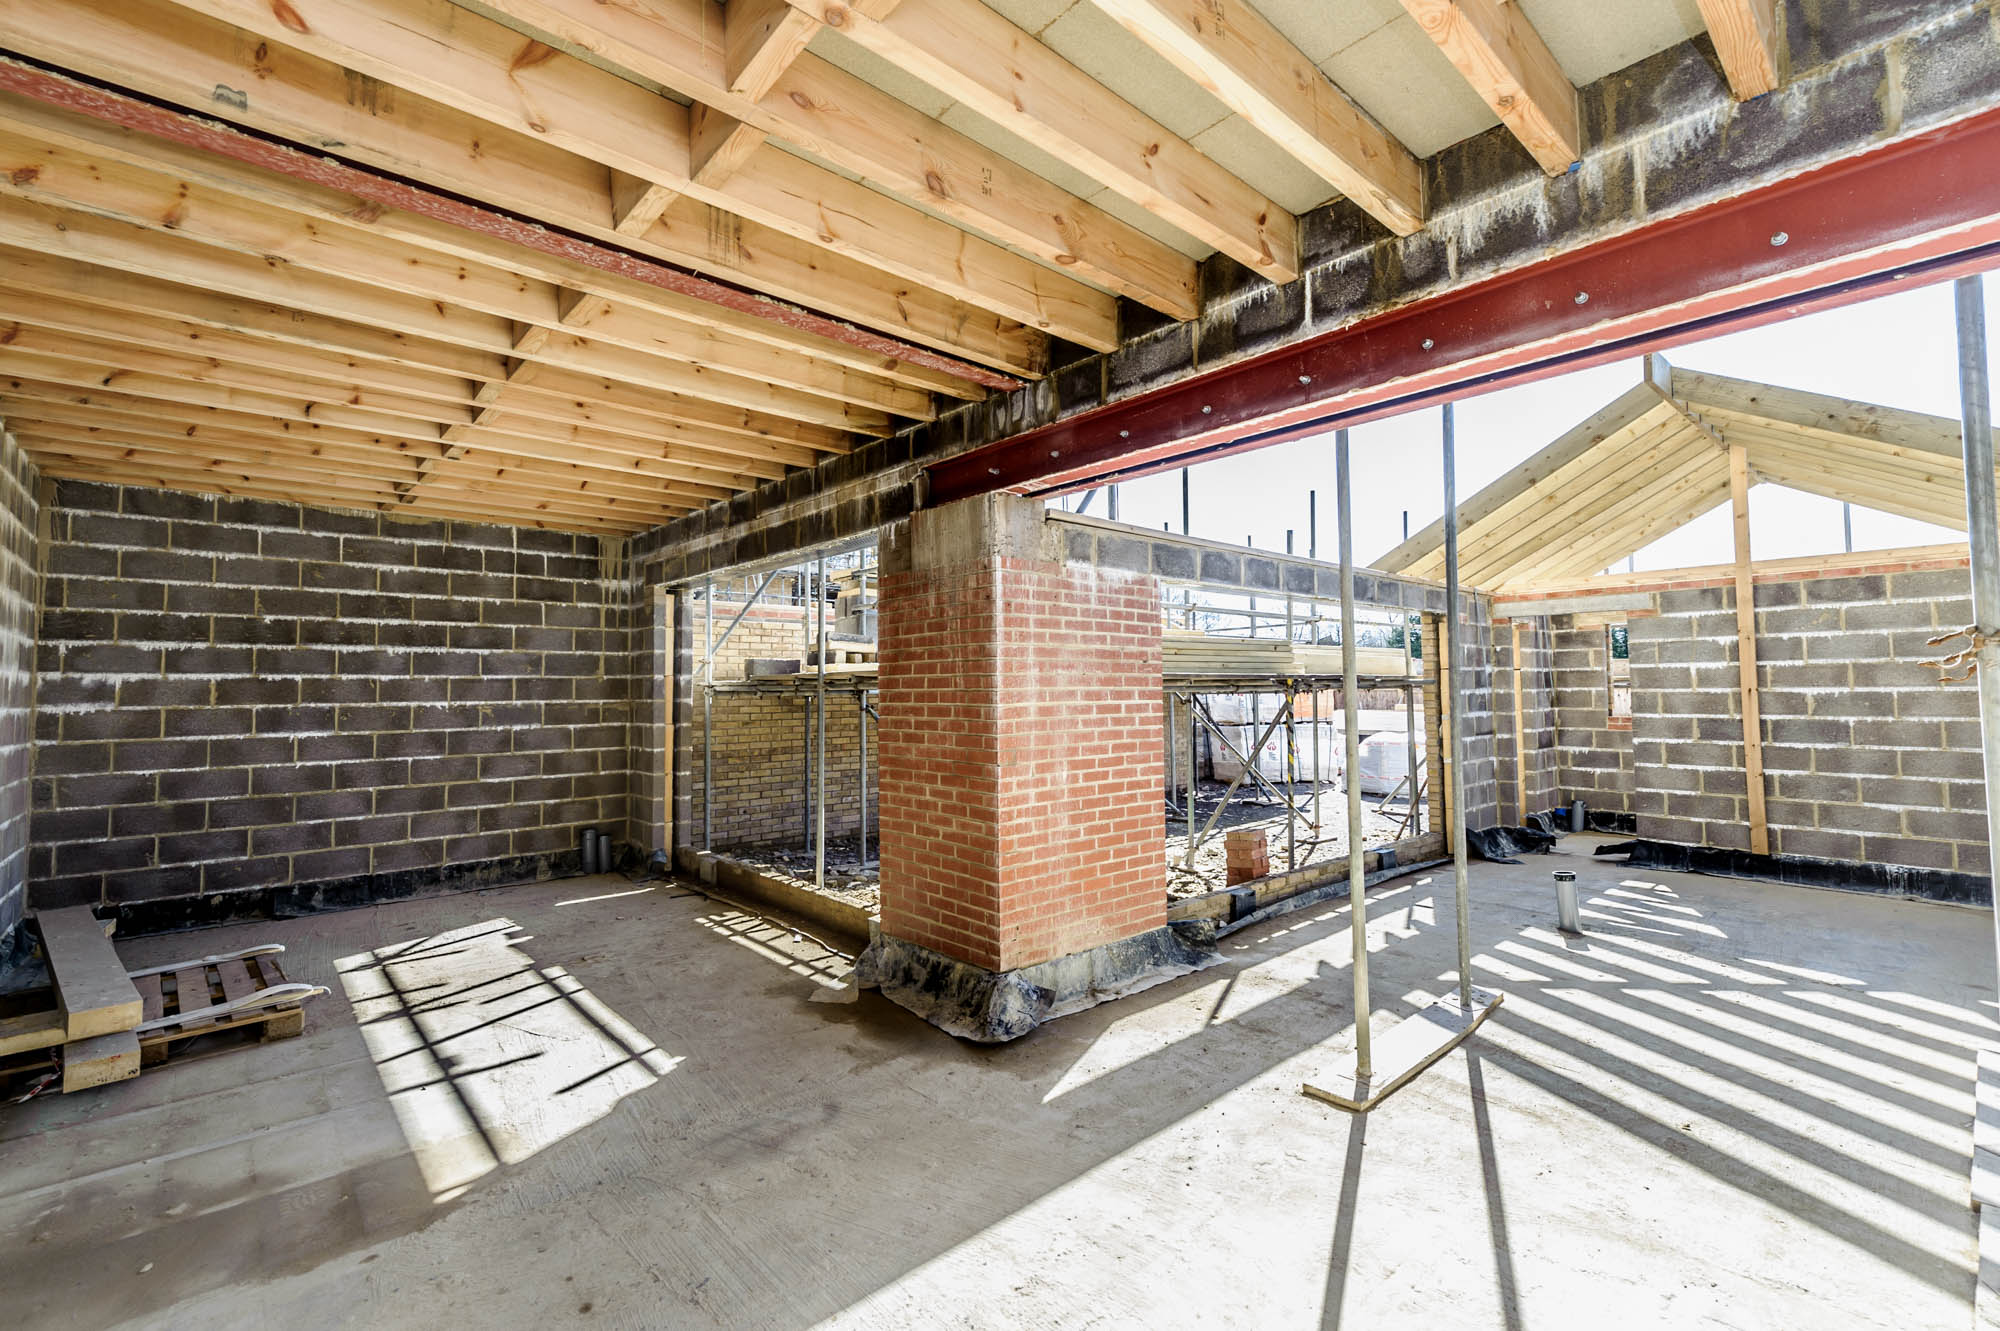 A photo of the interior of a house during the building stage showing beams, bricks and lintels